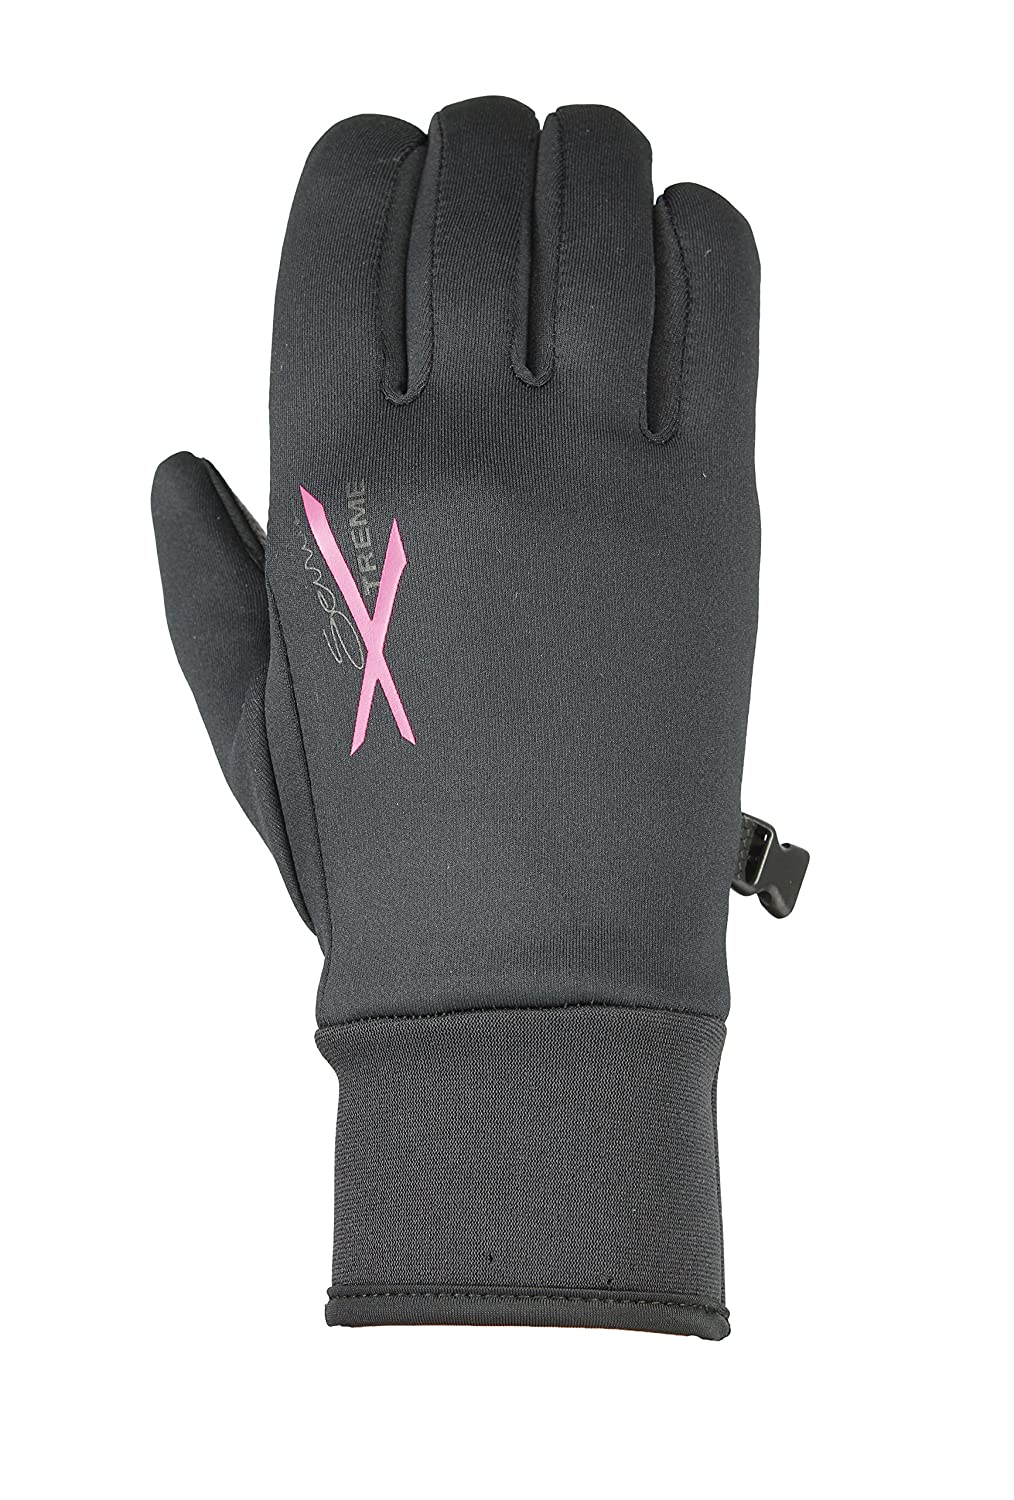 Seirus Innovation Womens Ladies Xtreme Waterproof Form Fit Gloves